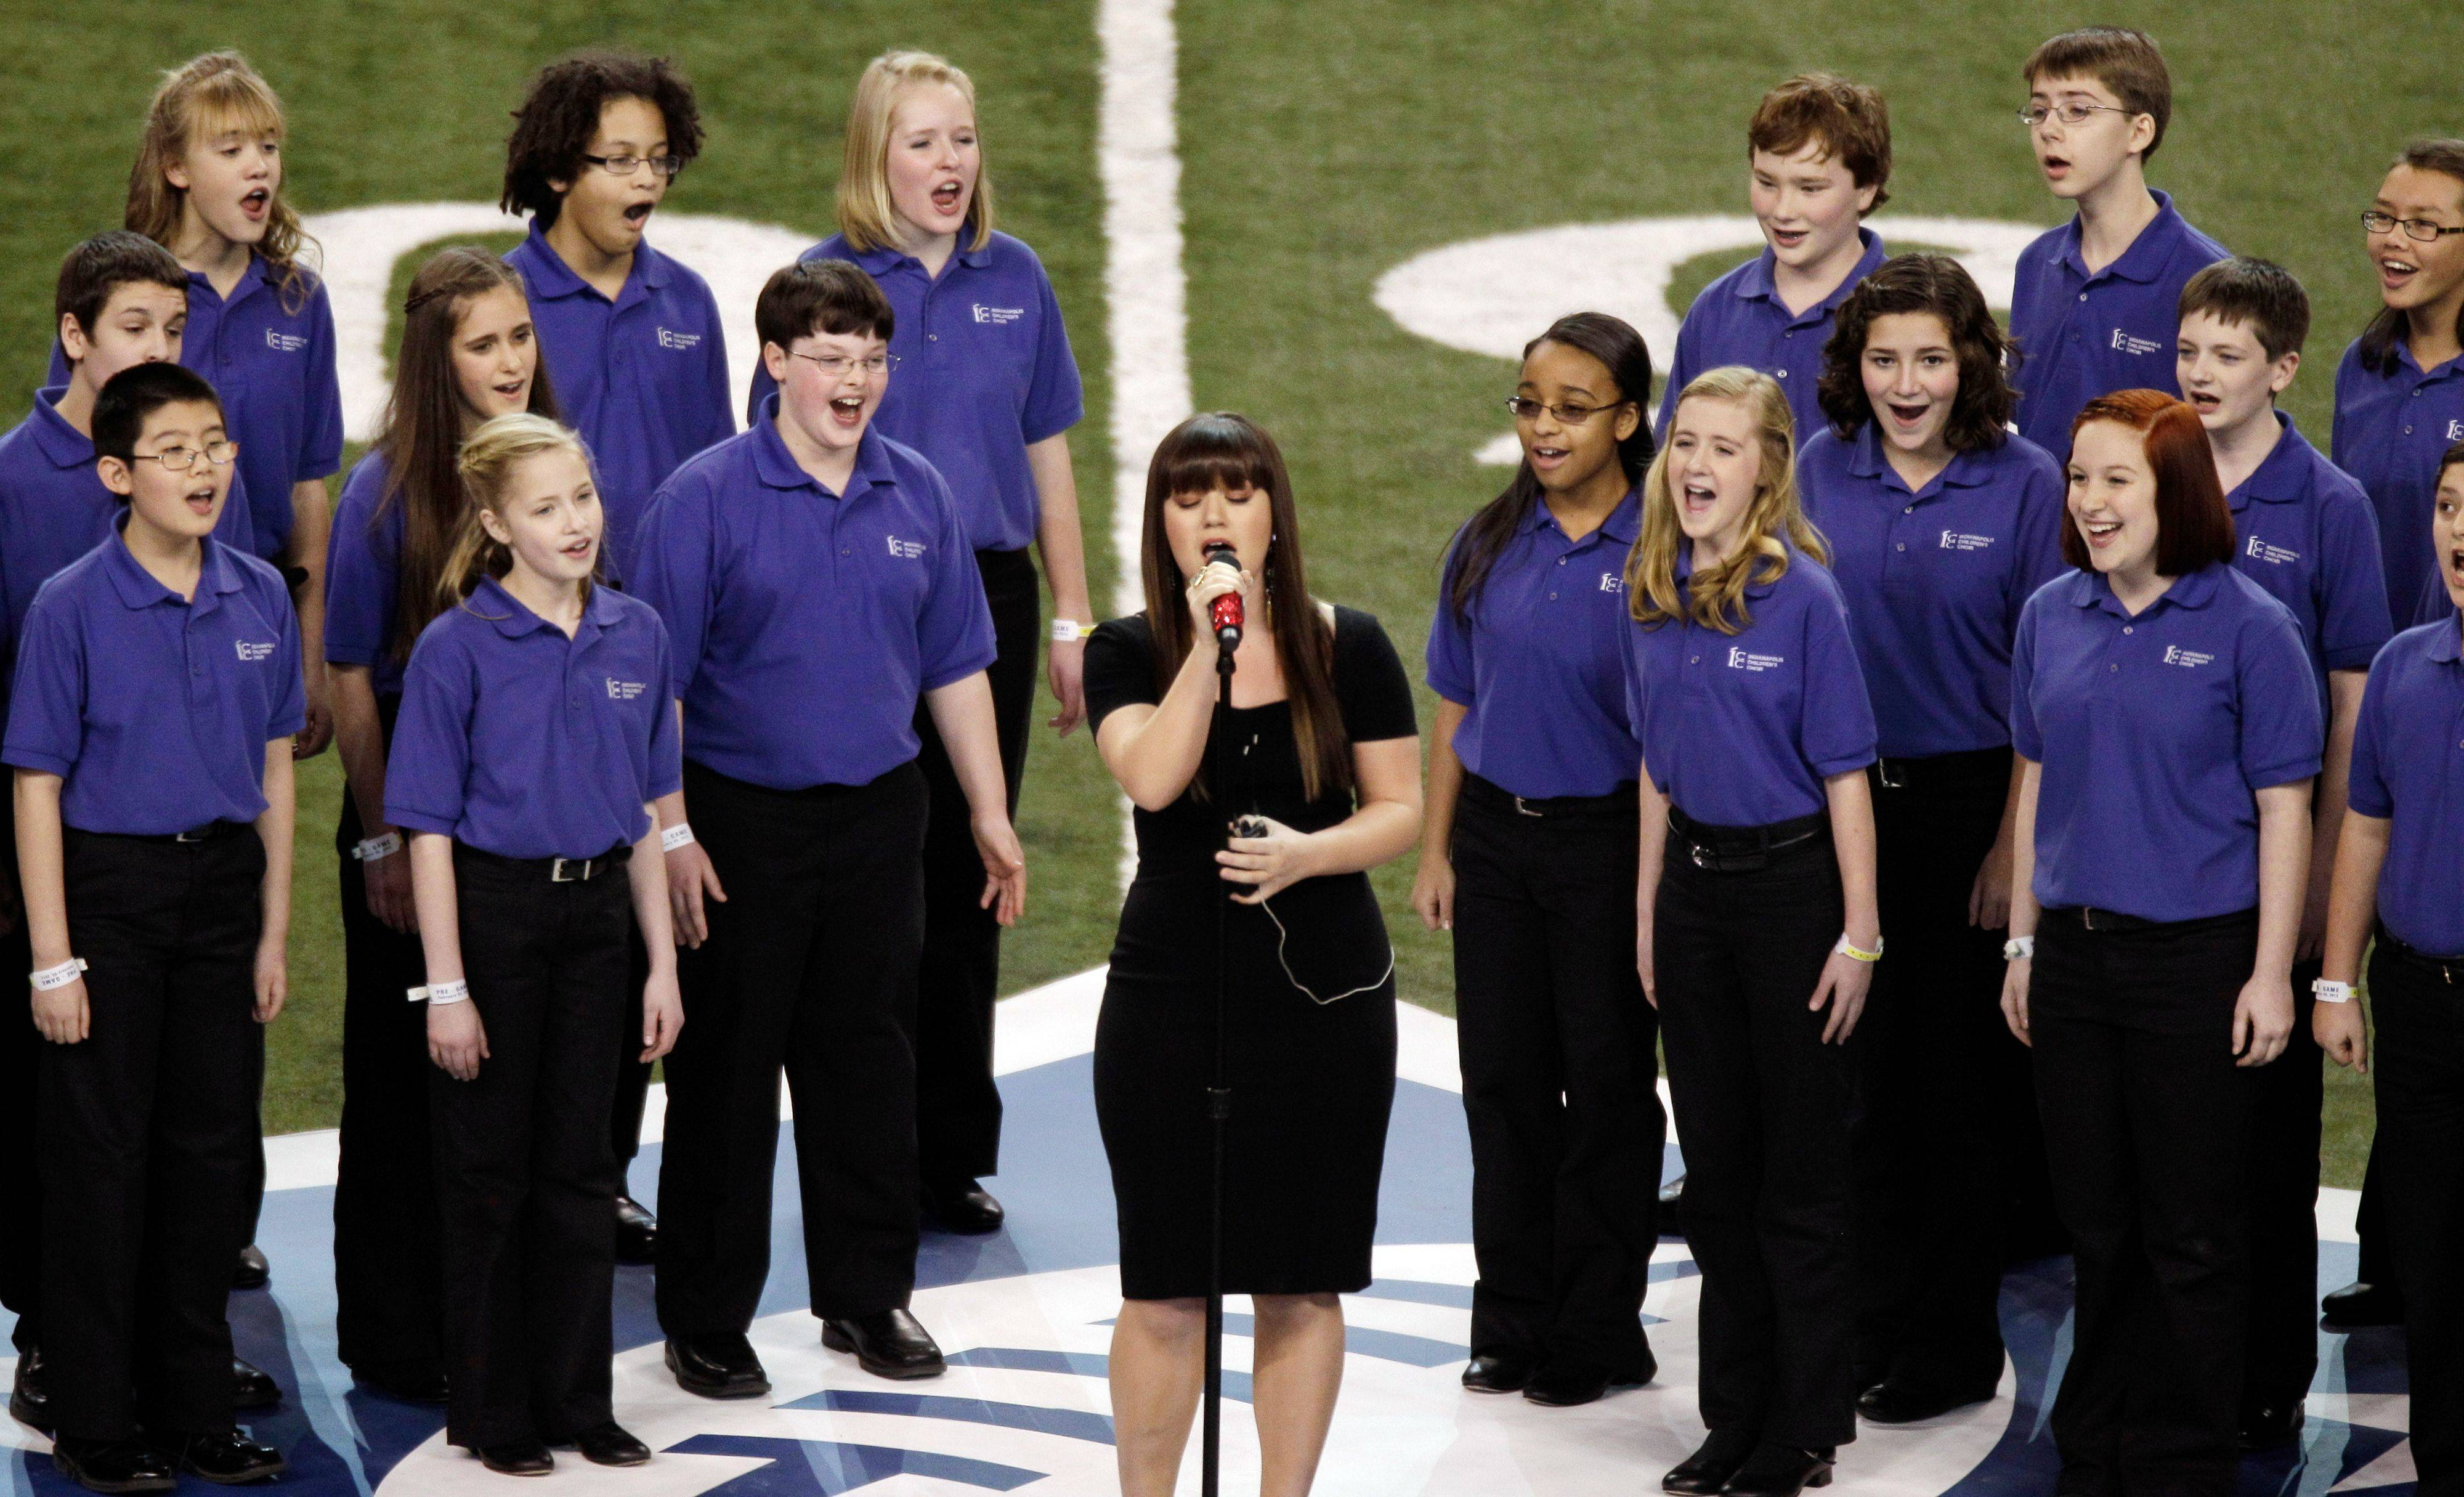 Kelly Clarkson performs the national anthem with the Indianapolis Children's Choir before the NFL Super Bowl XLVI football game between the New York Giants and the New England Patriots Sunday in Indianapolis.